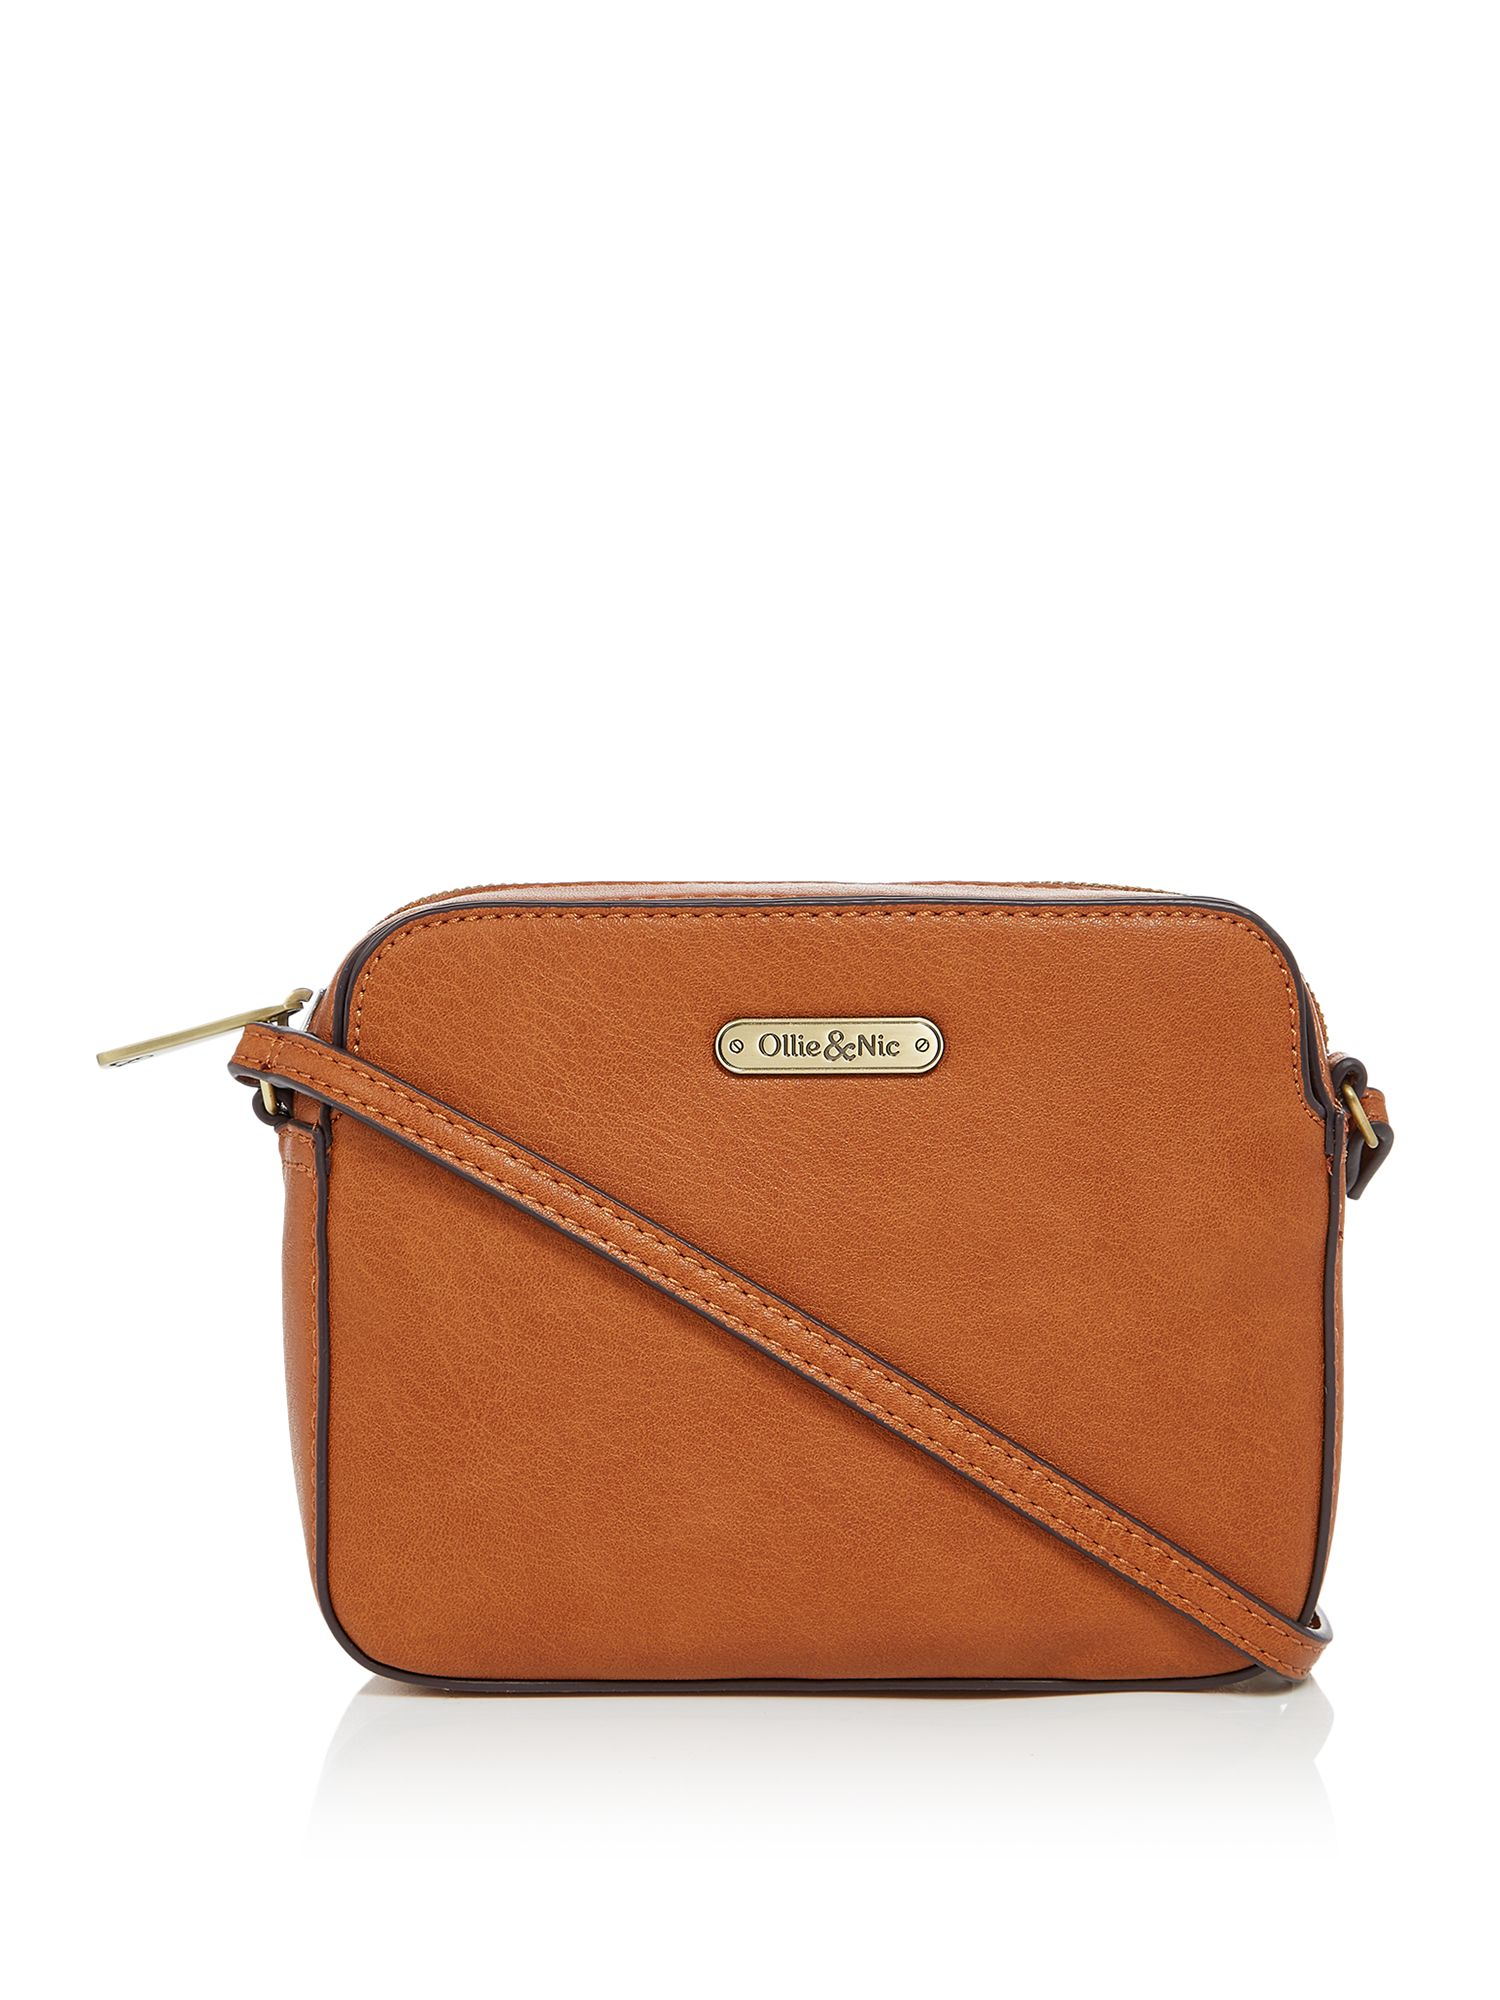 Ollie & Nic Patsy Crossbody, Tan